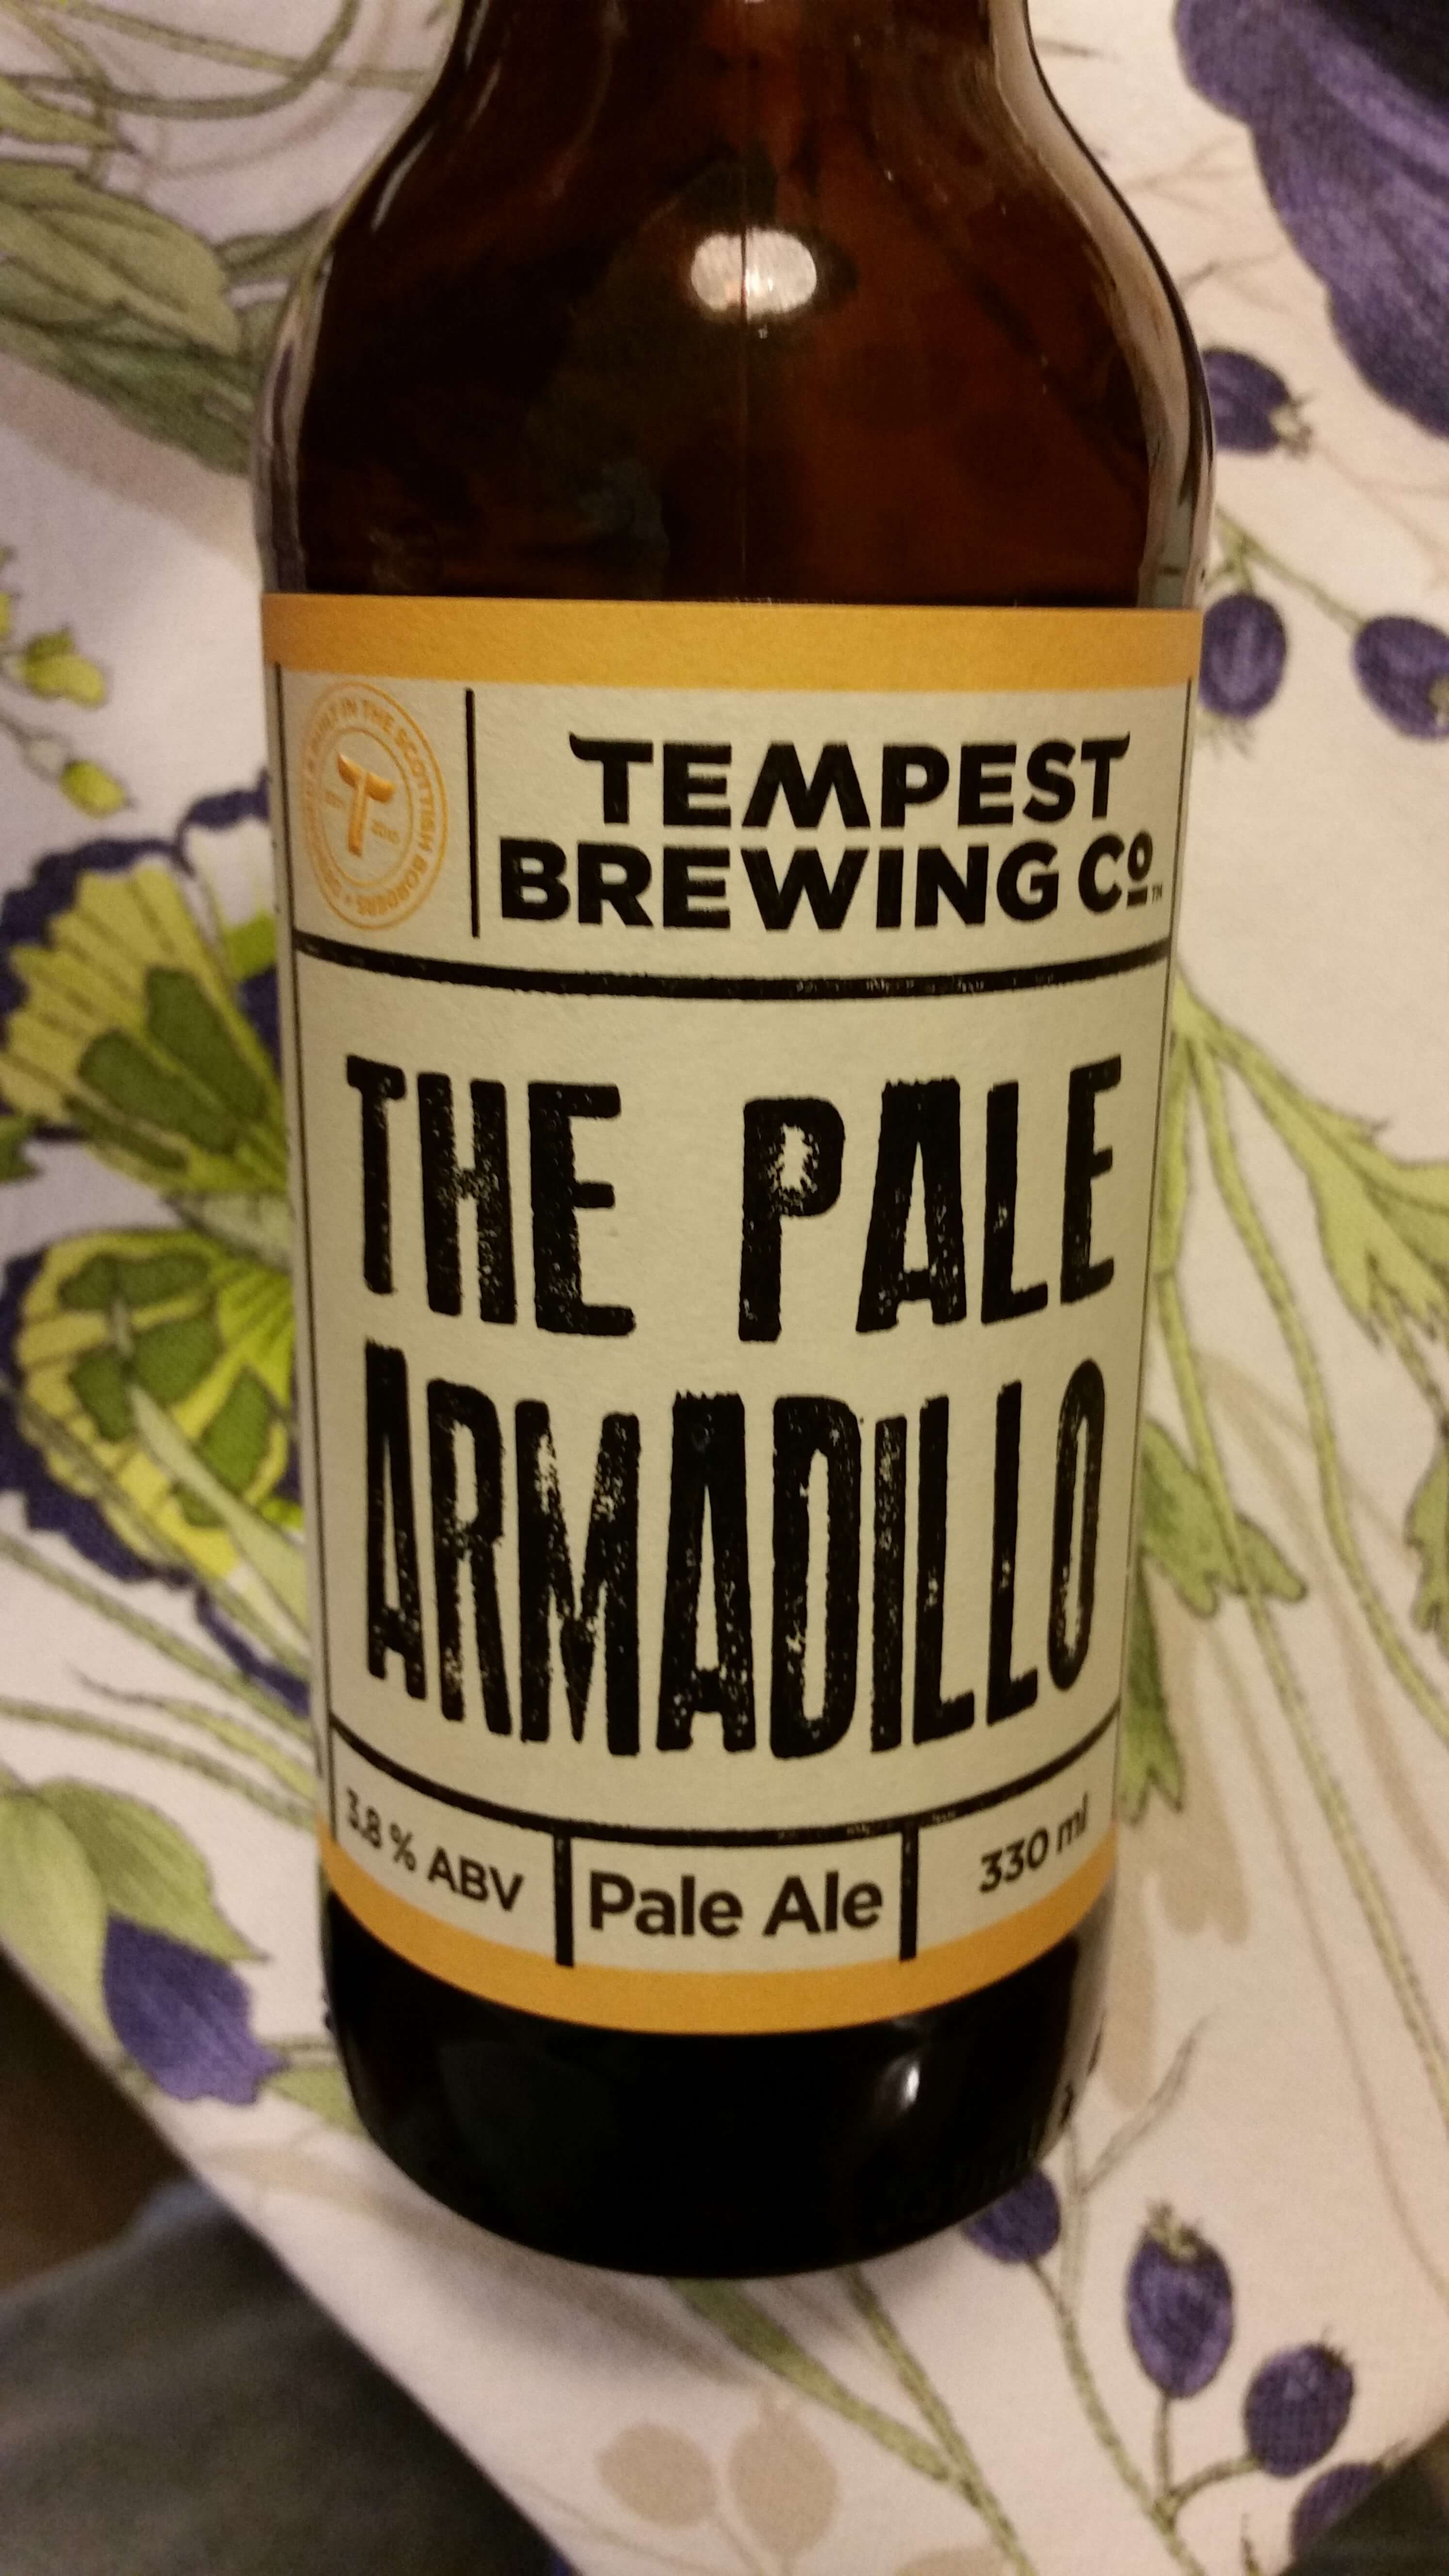 The Pale Armadillo - Pale Ale, Tempest Brew Co